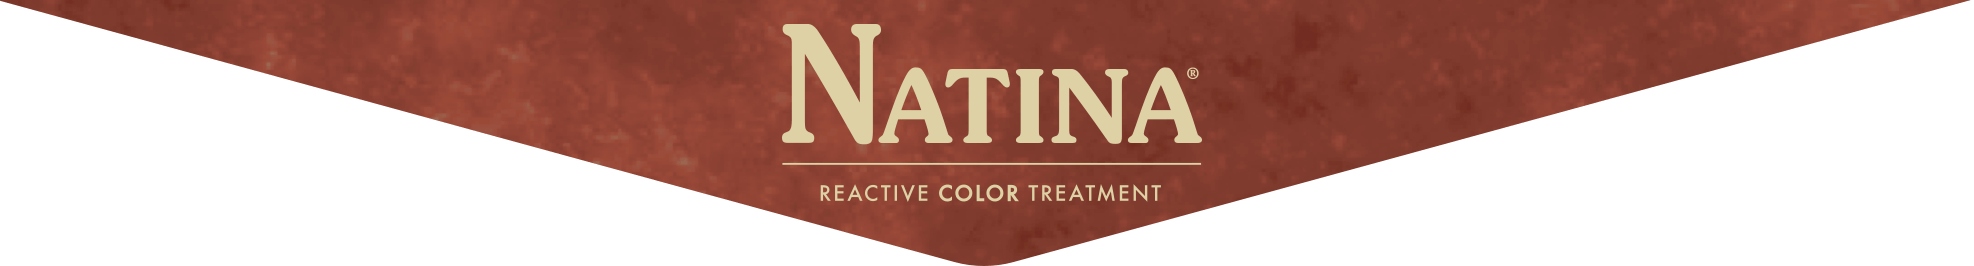 How Natina Can Help Energy Structures Blend in with Nature